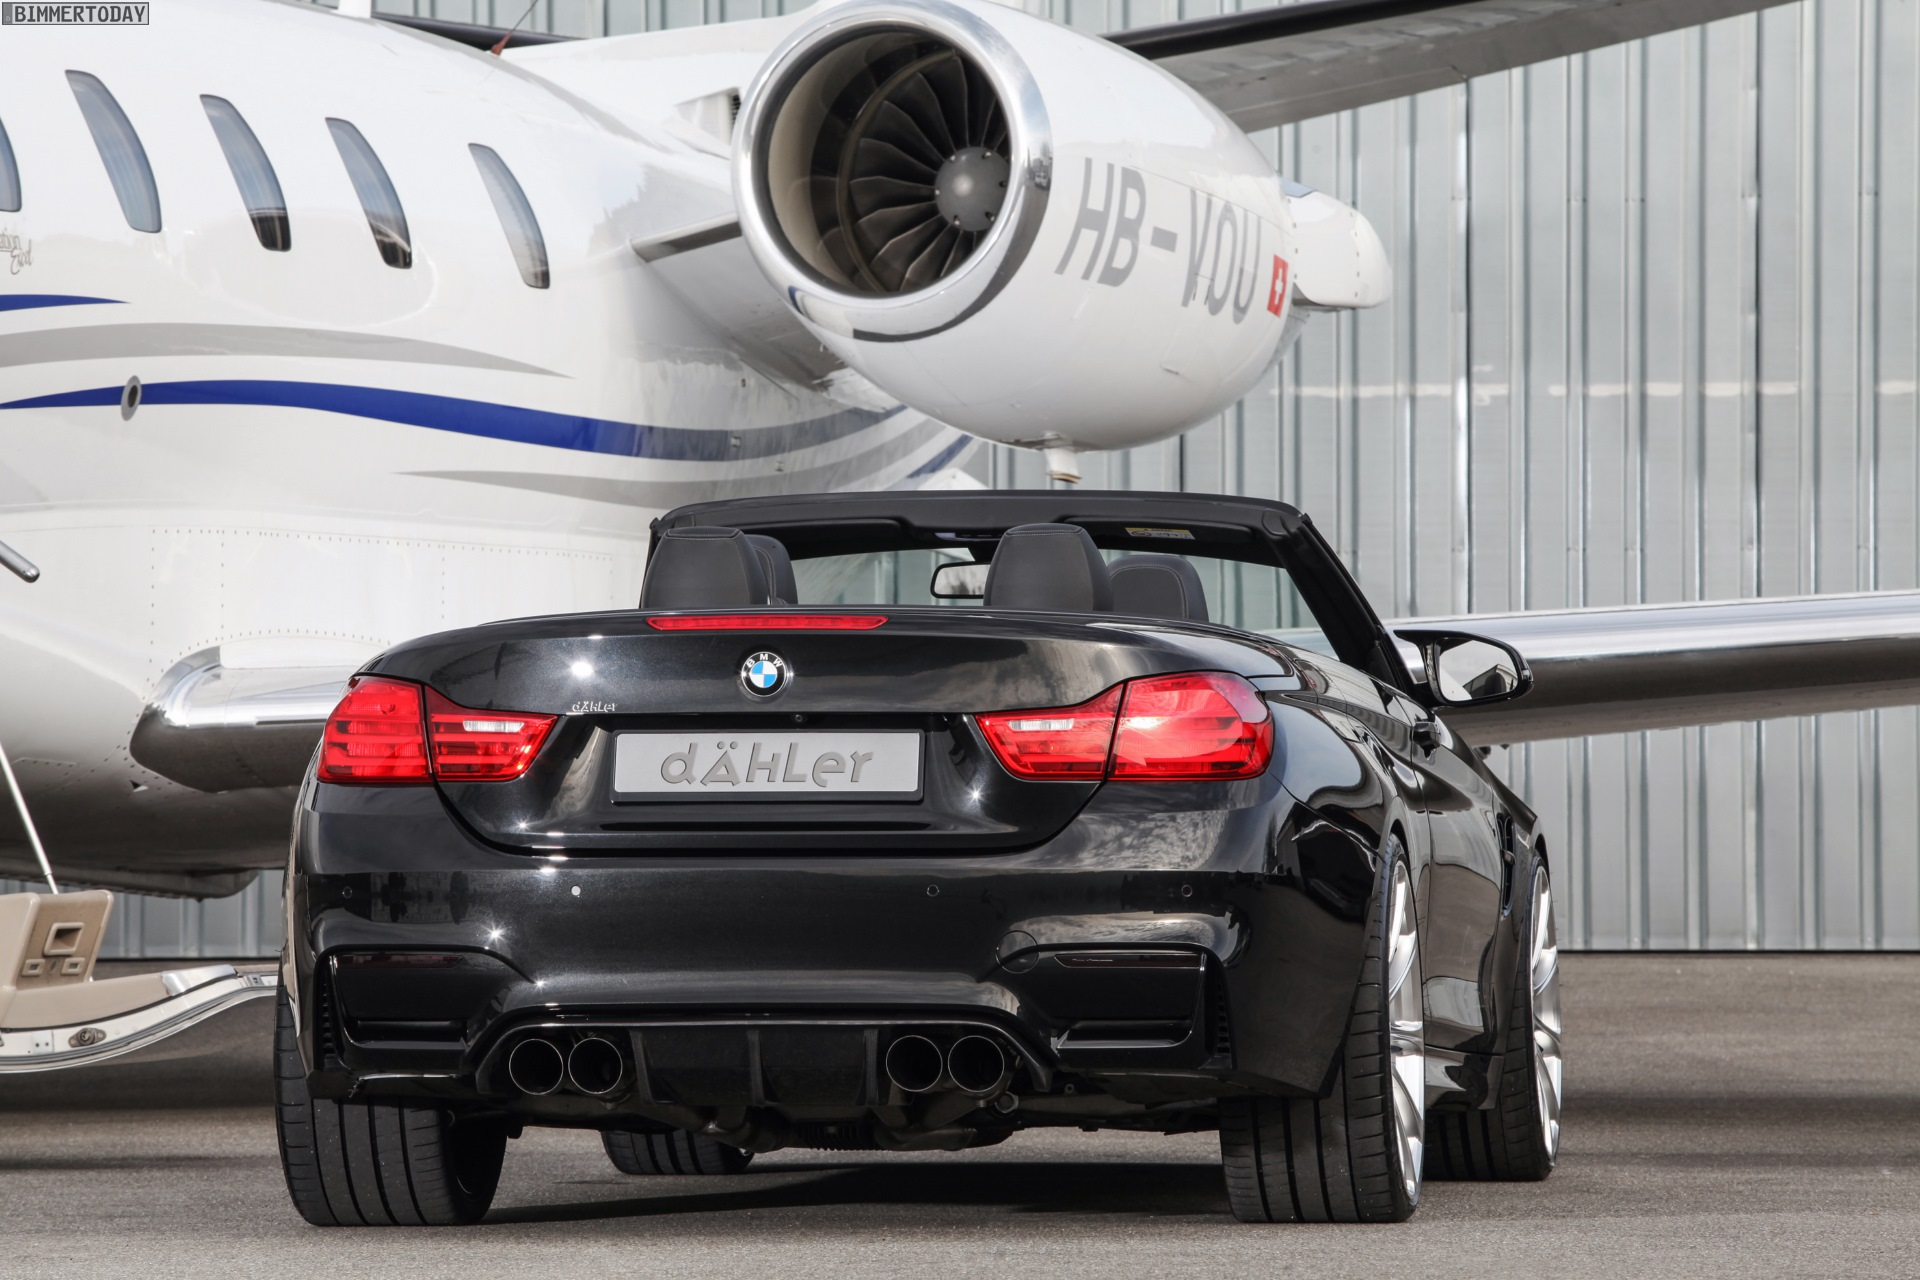 Dahler Bmw M4 Convertible With Power Tuning To 540 Hp